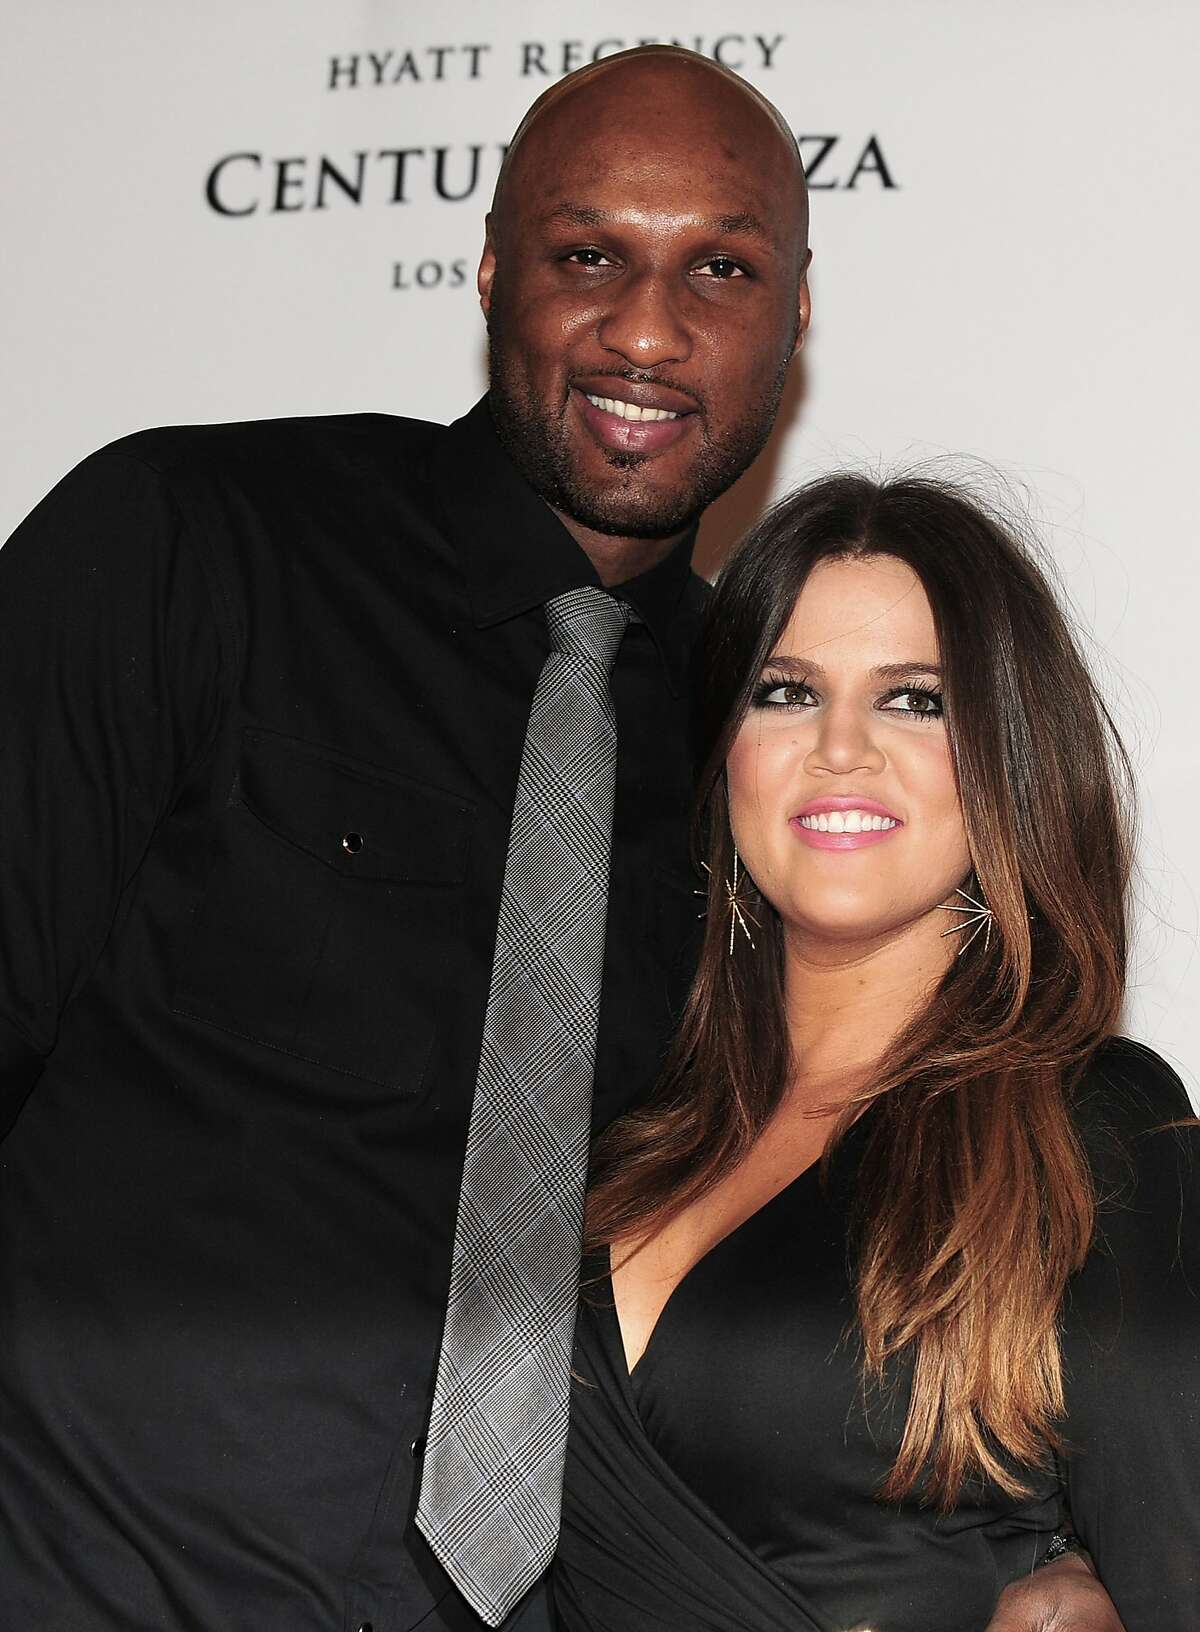 """(FILES) Lamar Odom and Khloe Kardashian-Odom pose on arrival for the 19th Annual Race to Erase MS themed """"Glam Rock to Erase MS"""" in Los Angeles in this May 18, 2012, file photo. Odom, a former NBA champion who gained wider fame as the husband of reality TV star Khloe Kardashian was in hospital after being found """"unresponsive"""" at a Nevada brothel, authorities said on October 13, 2015. The Nye County Sheriff's Department was called Tuesday afternoon to Love Ranch, a legal brothel in Crystal, Nevada, for a report of an """"unresponsive"""" man needing an ambulance, Sheriff Sharon A. Wehrly said in a statement. AFP PHOTO/Frederic J. BROWN/FILESFREDERIC J. BROWN/AFP/Getty Images"""